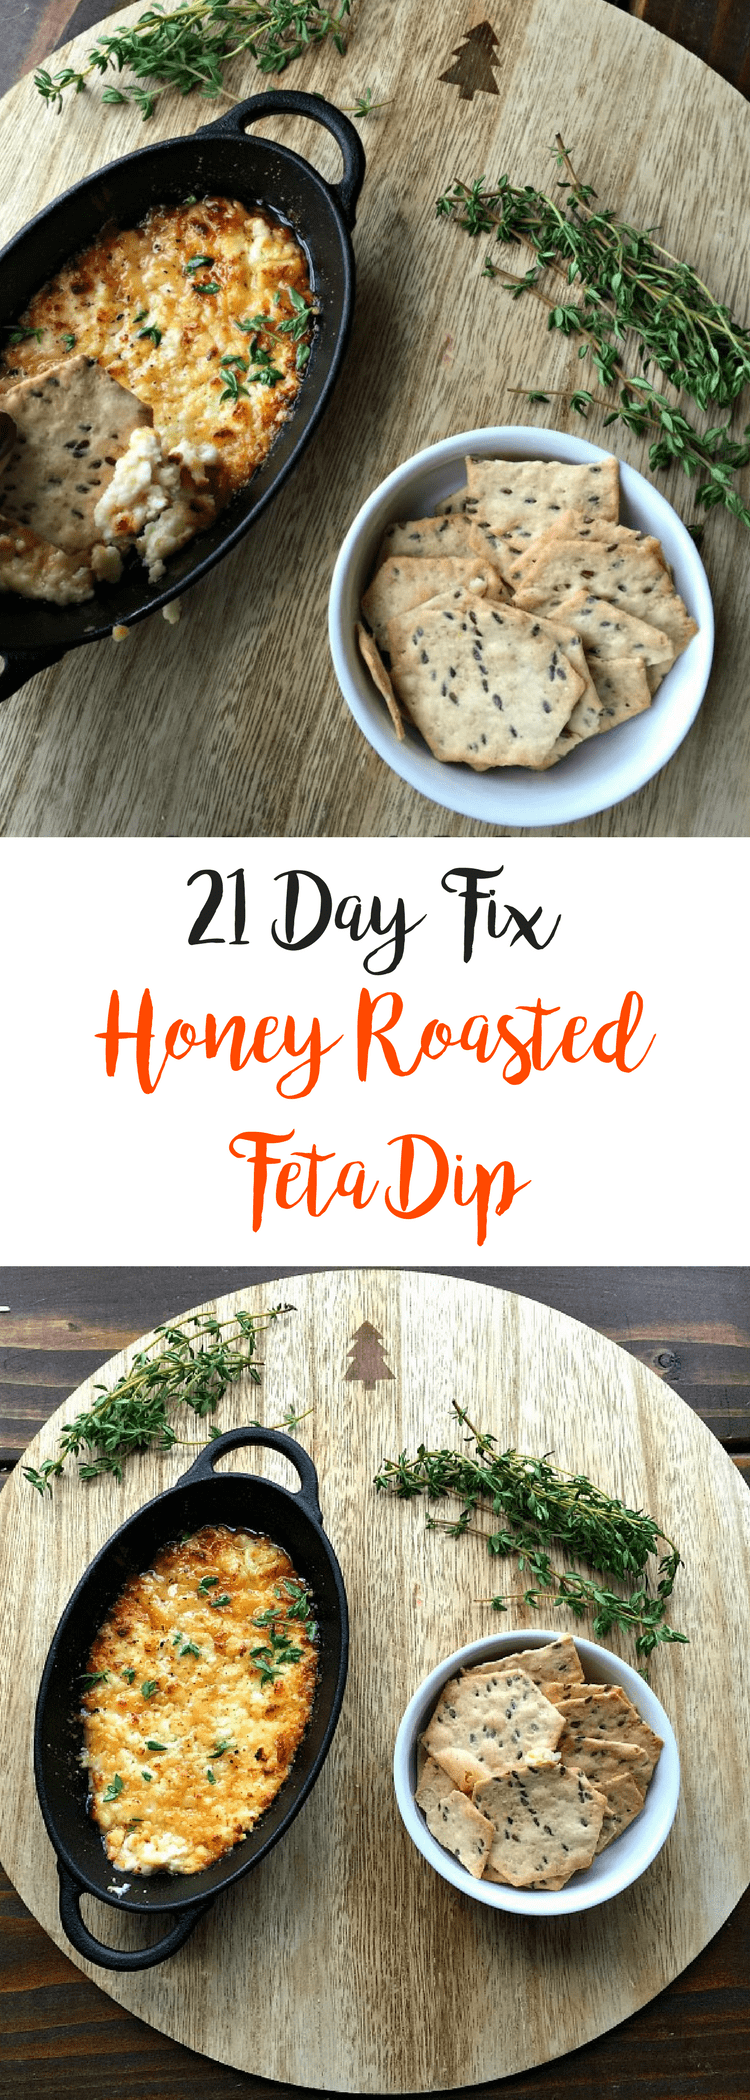 21 Day Fix Honey Roasted Feta Dip {Gluten-free} | Confessions of a Fit Foodie